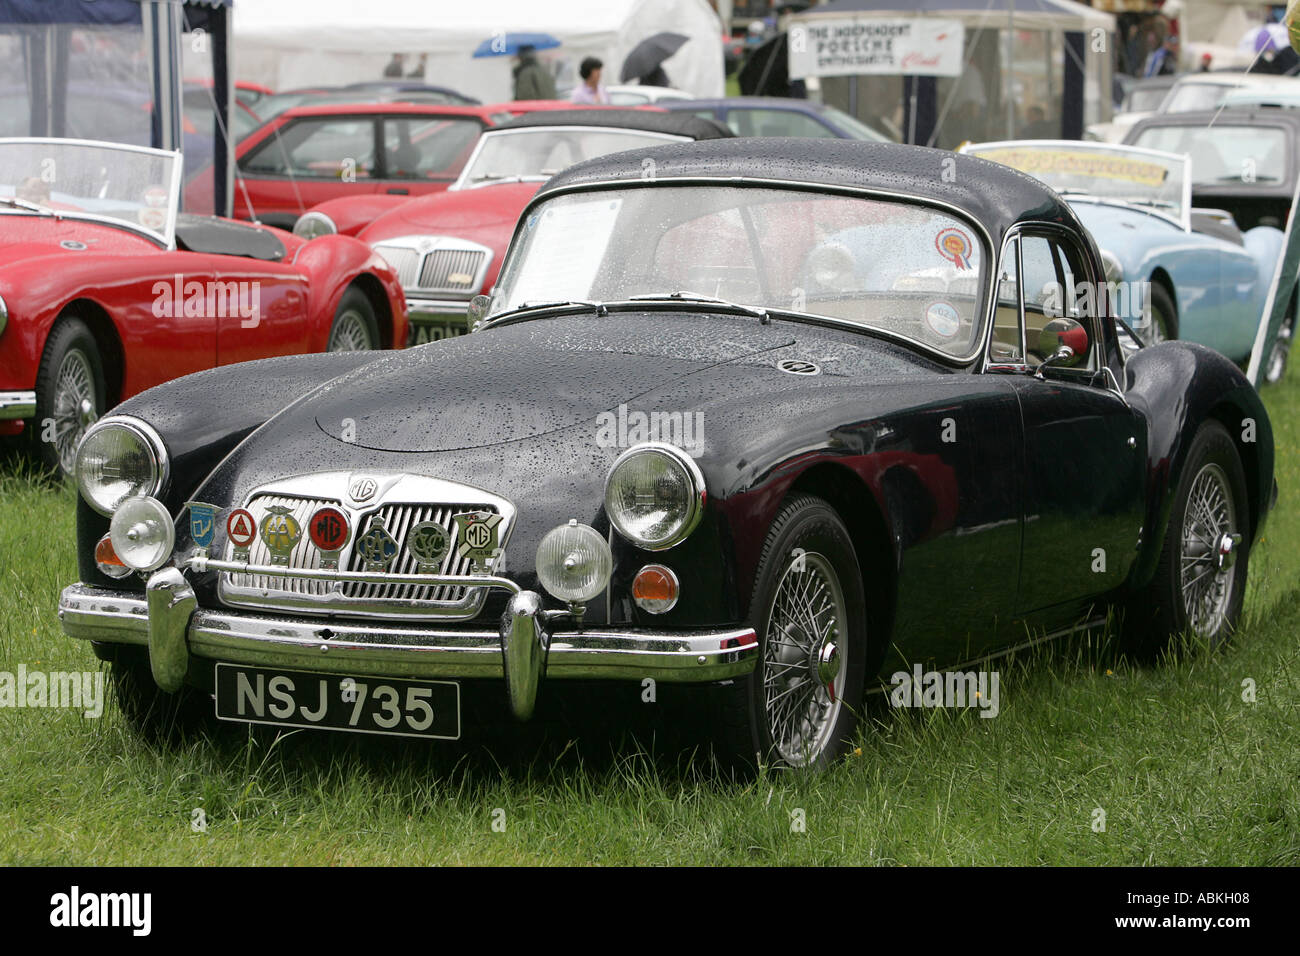 old car classic history vehicle vintage antipodes symbol collector ...